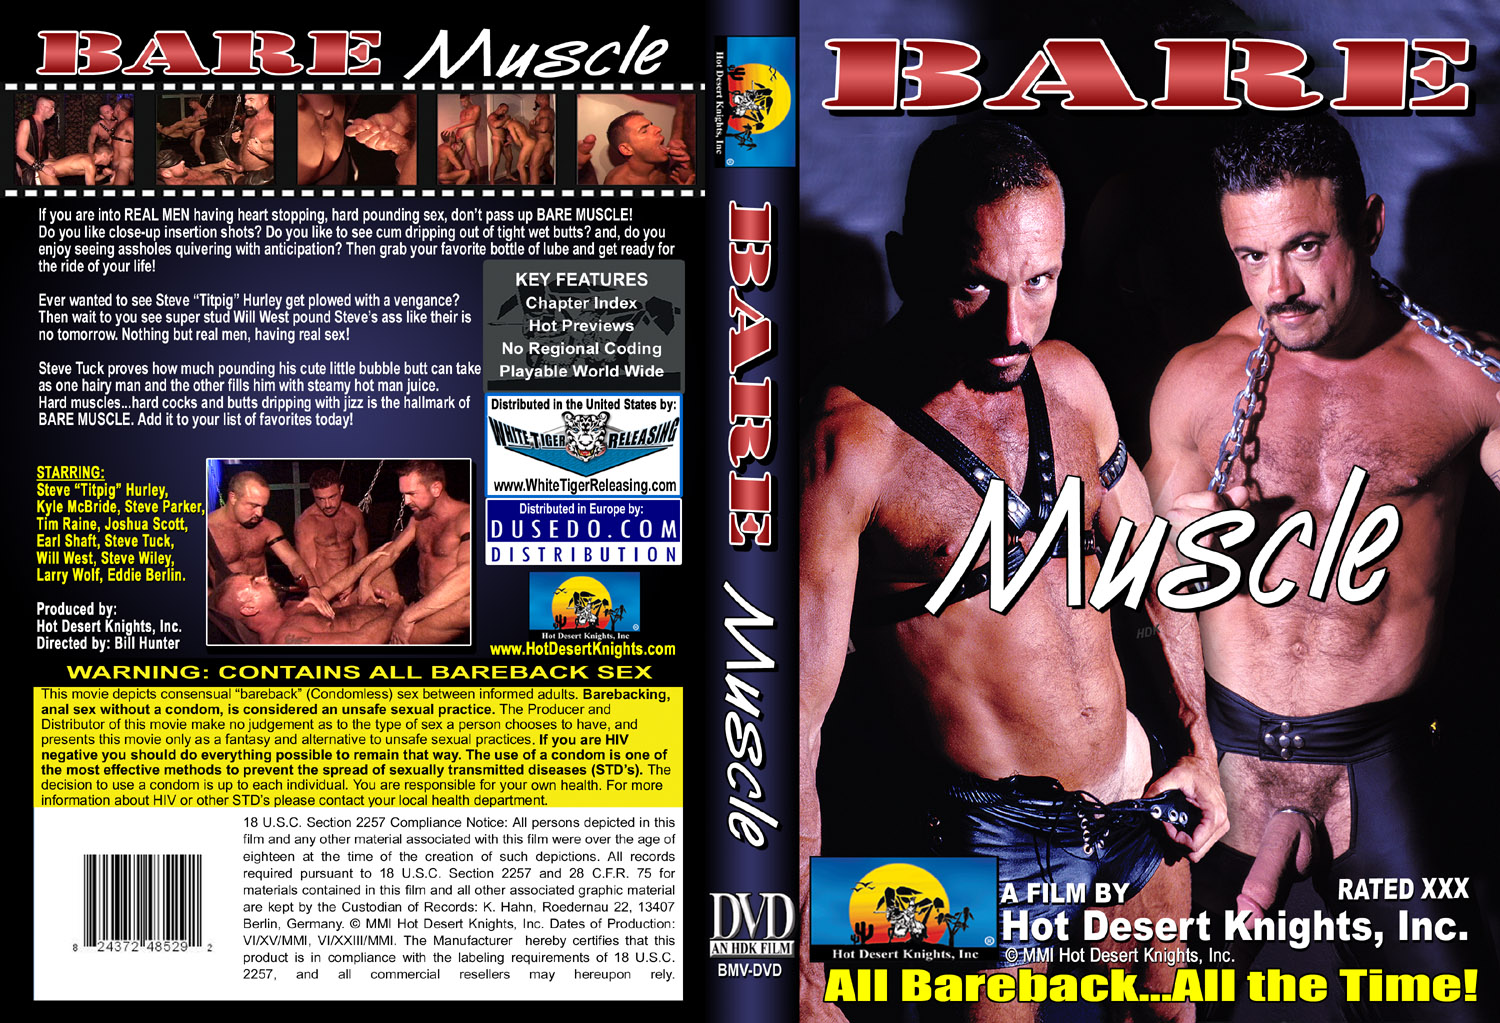 HDK Movie: BARE MUSCLE